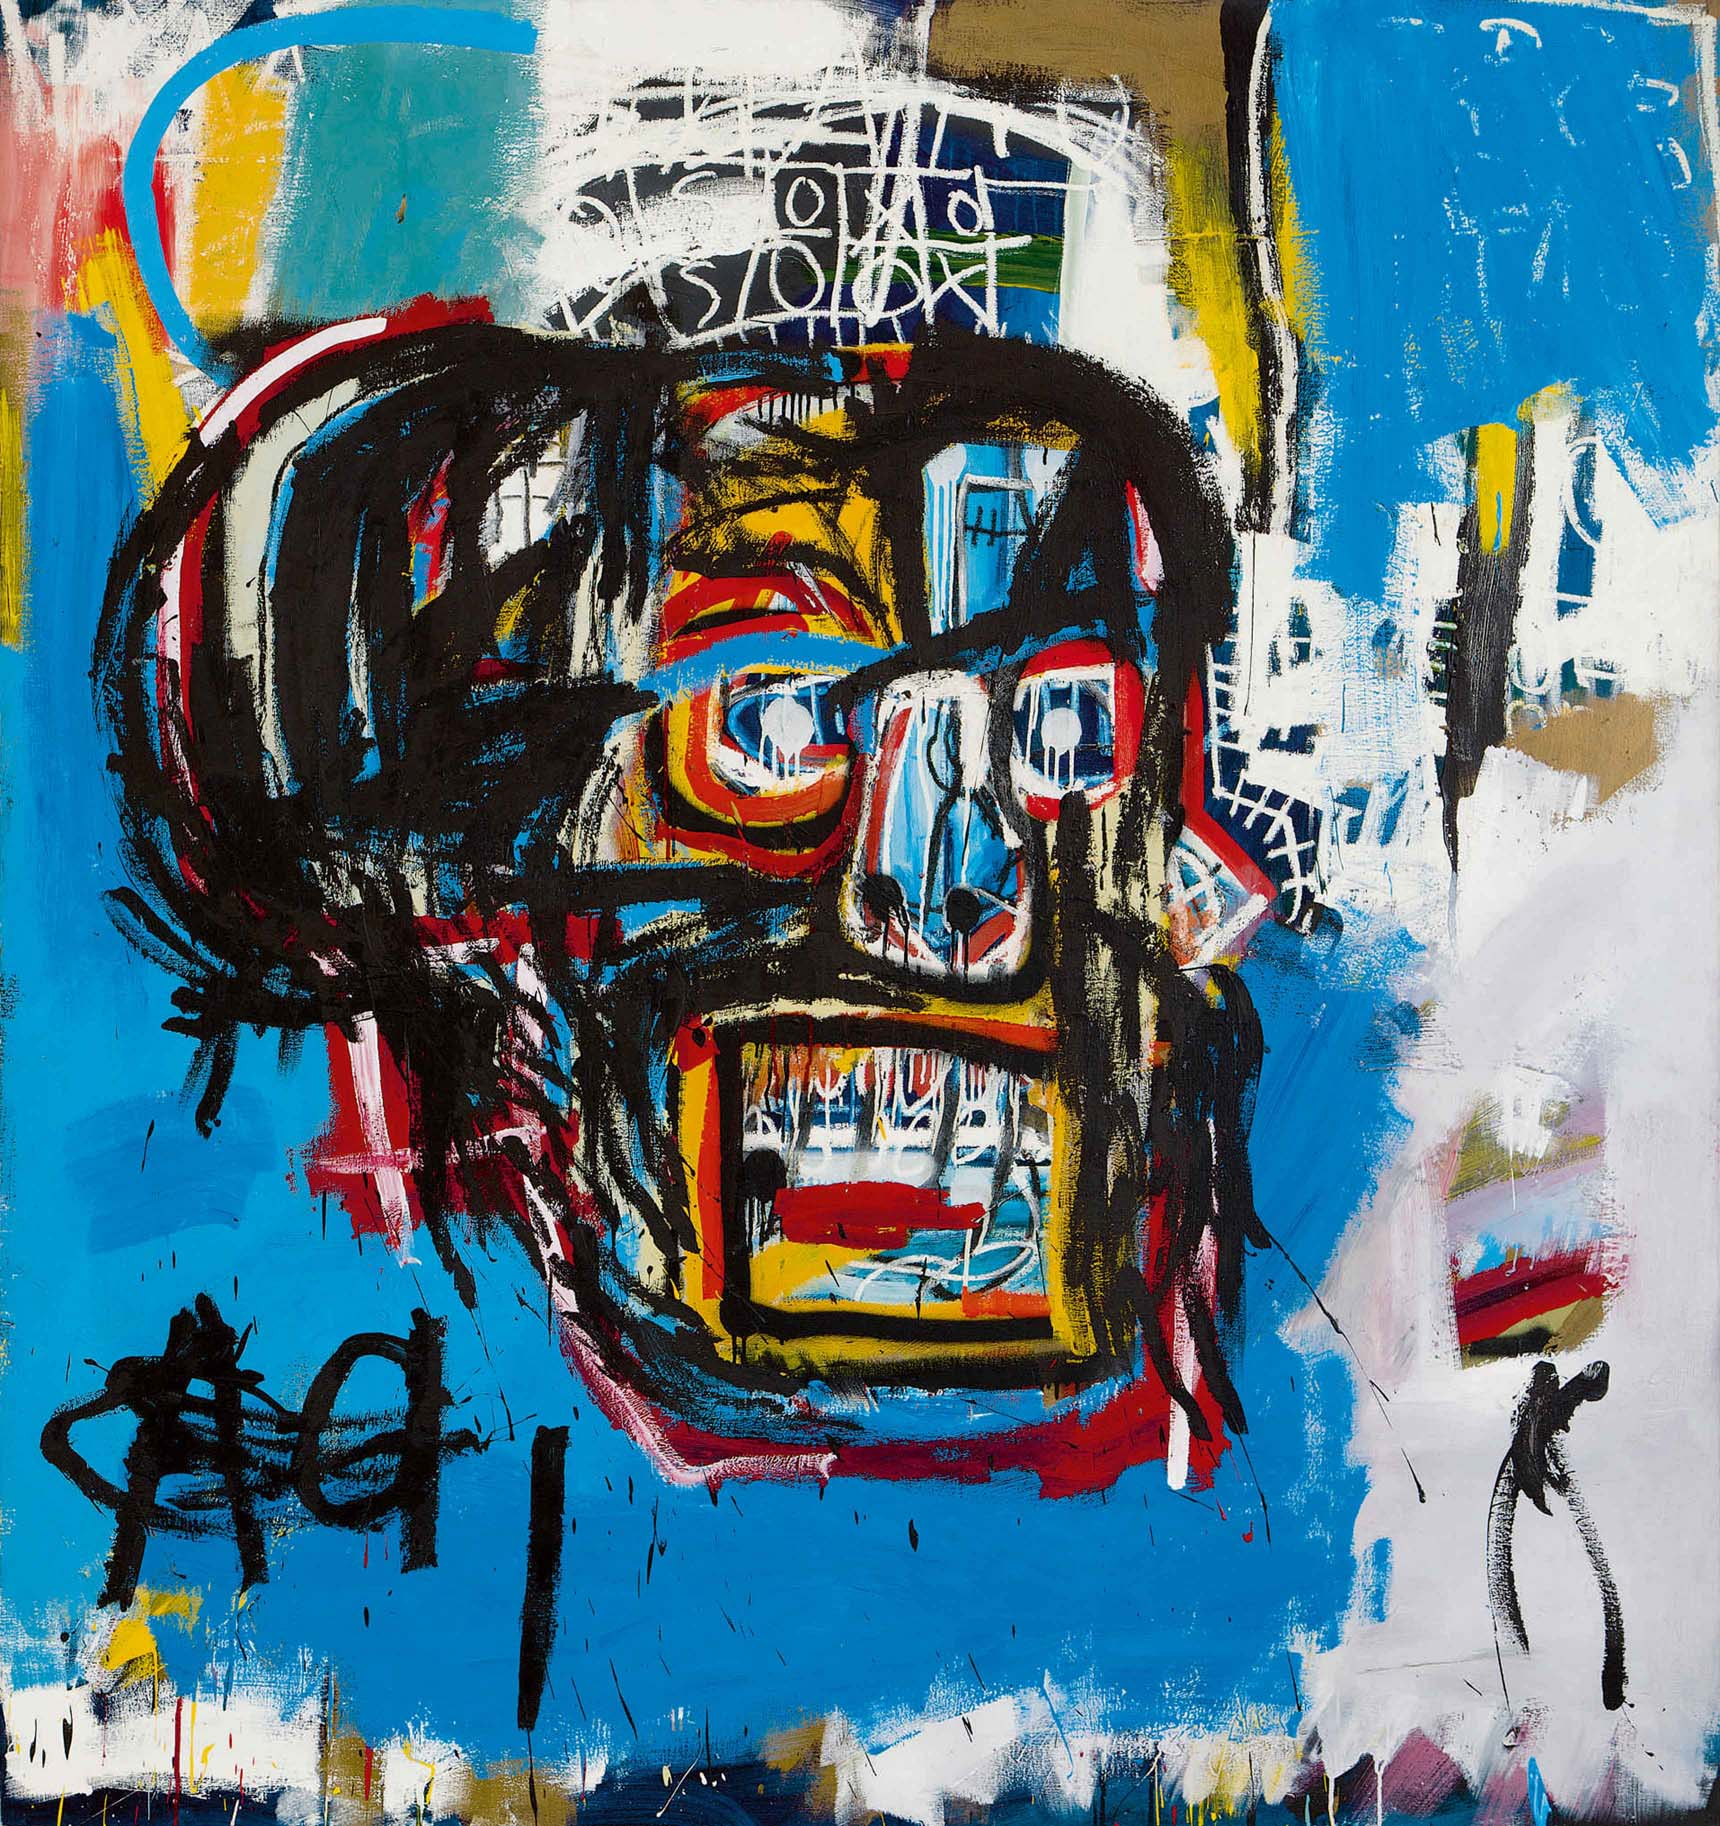 Untitled (1982), made by Jean-Michel Basquiat. Canvas sold by auction for 110.5 millions of dollars.